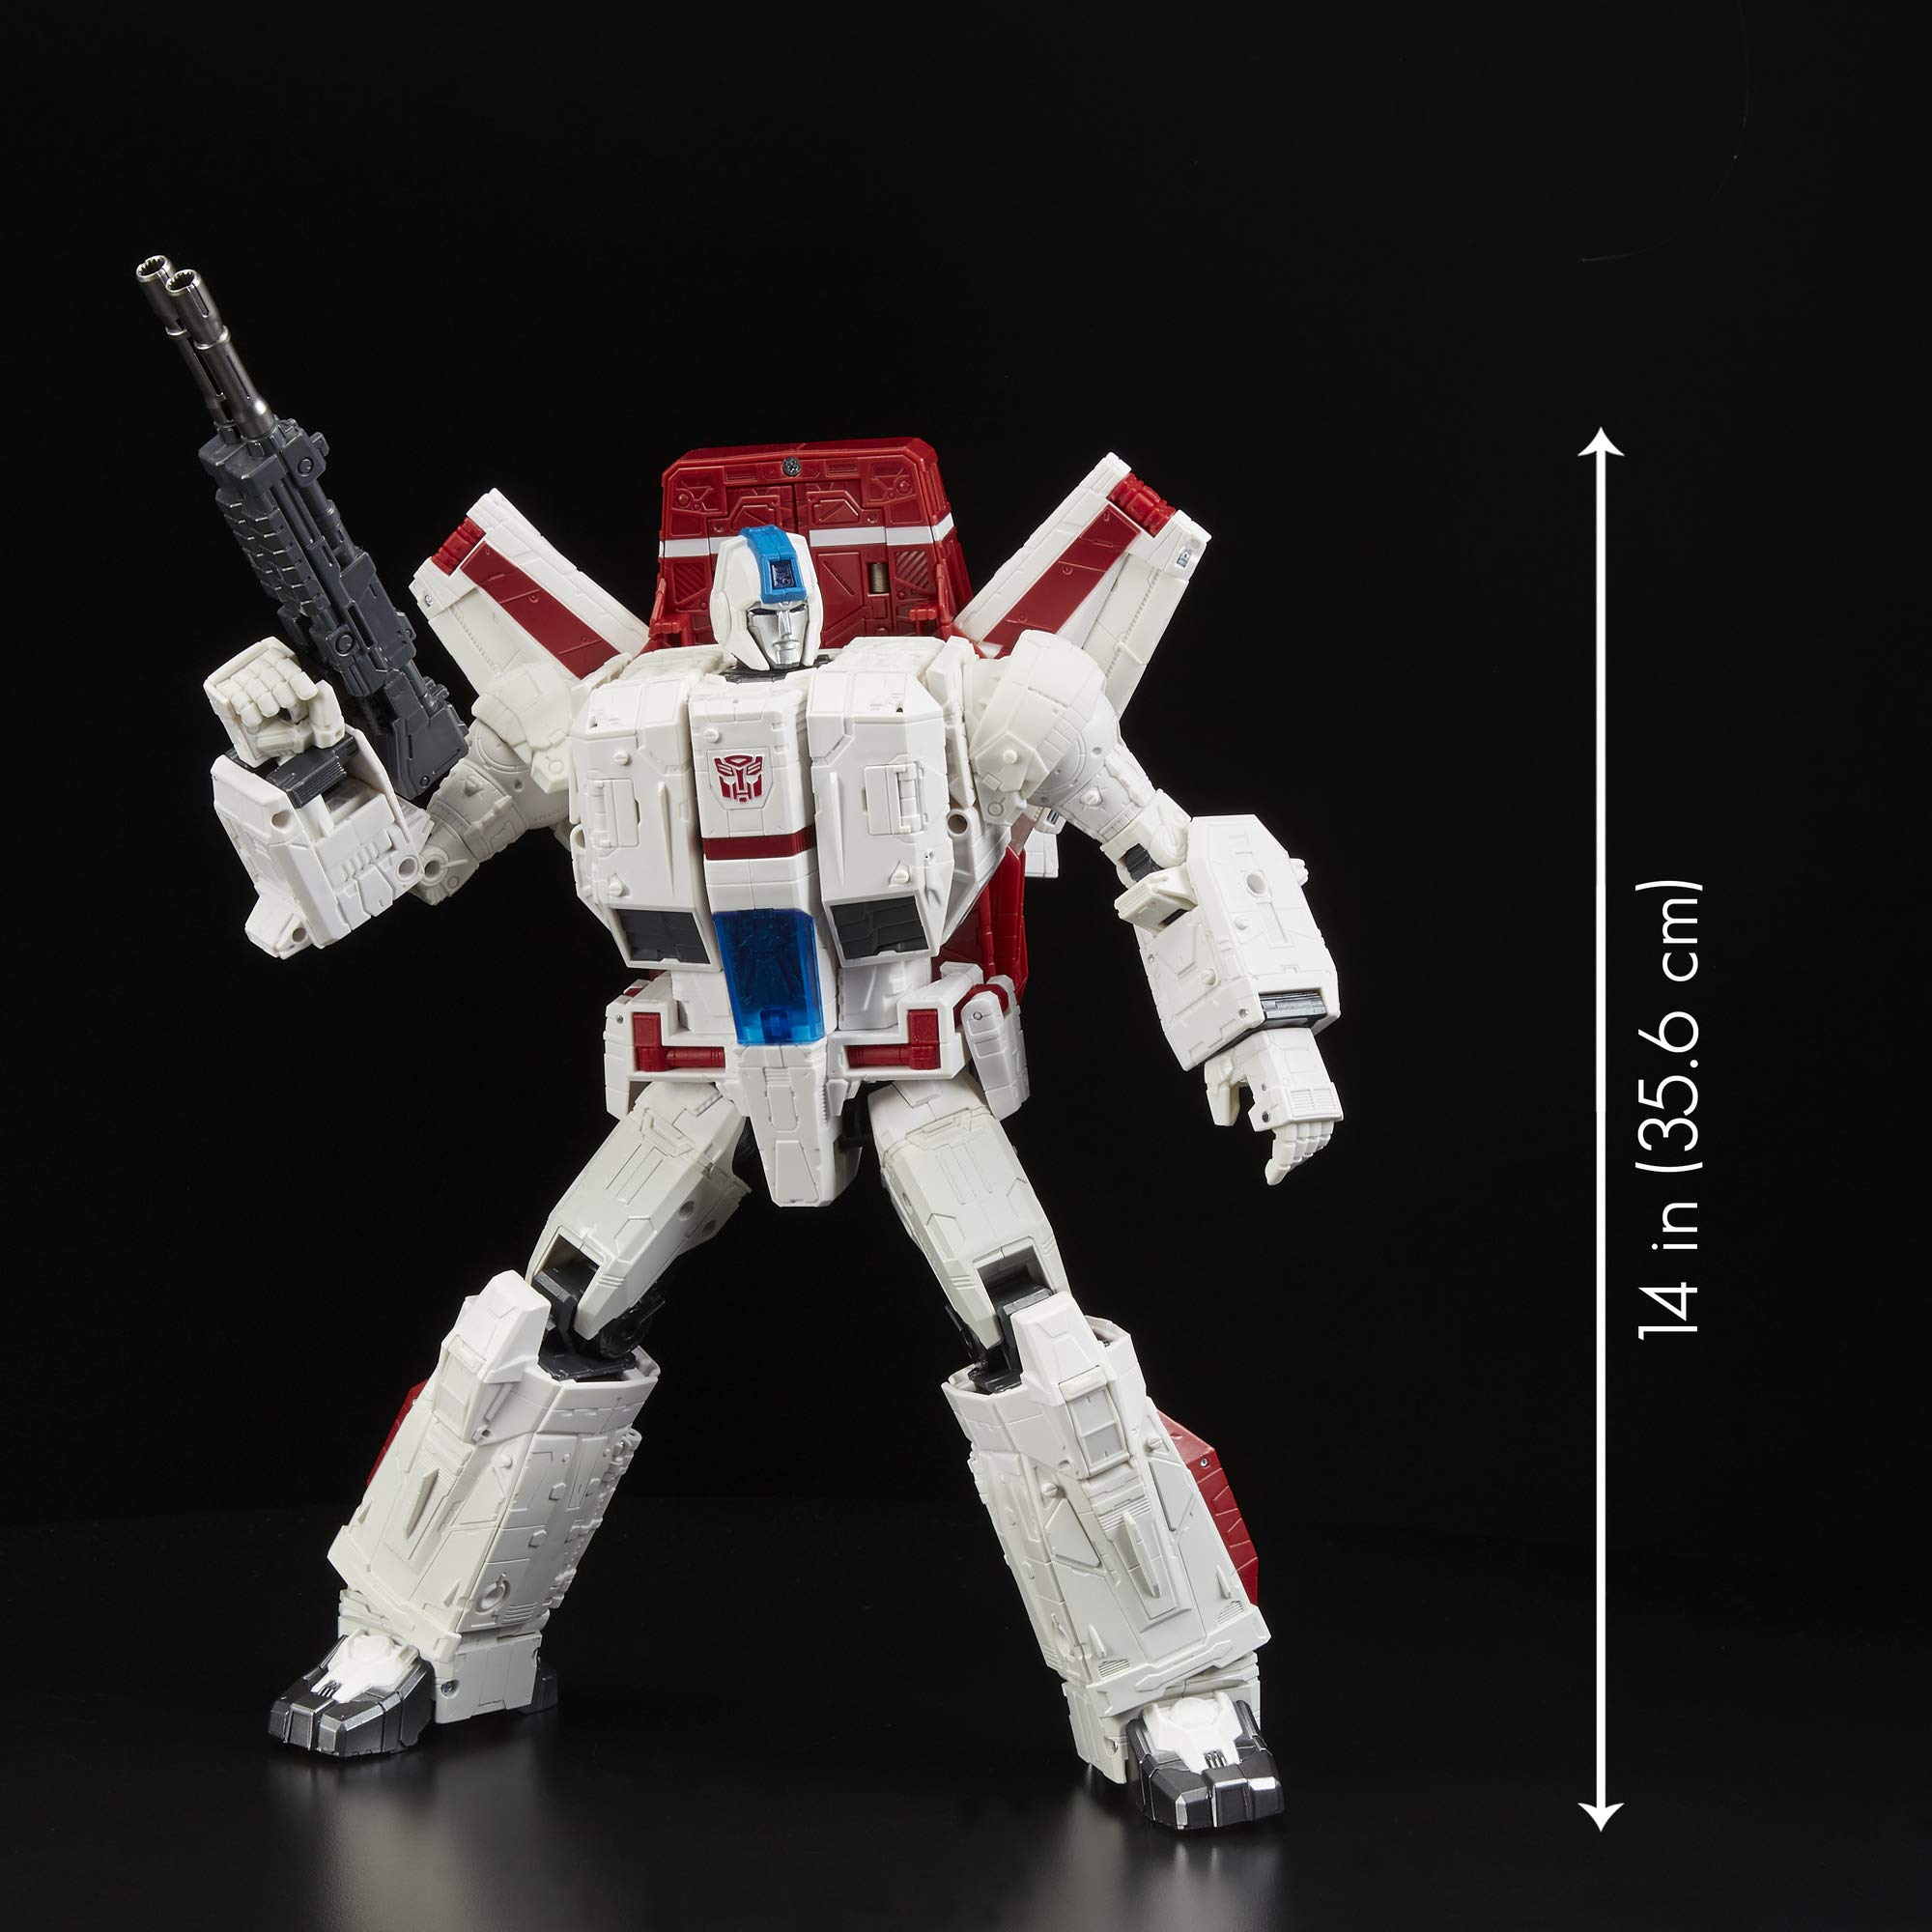 Transformers Toys Generations War for Cybertron Commander Wfc-S28 Jetfire Action Figure - Siege Chapter - Adults & Kids Ages 8 & Up, 11'' by Transformers (Image #5)